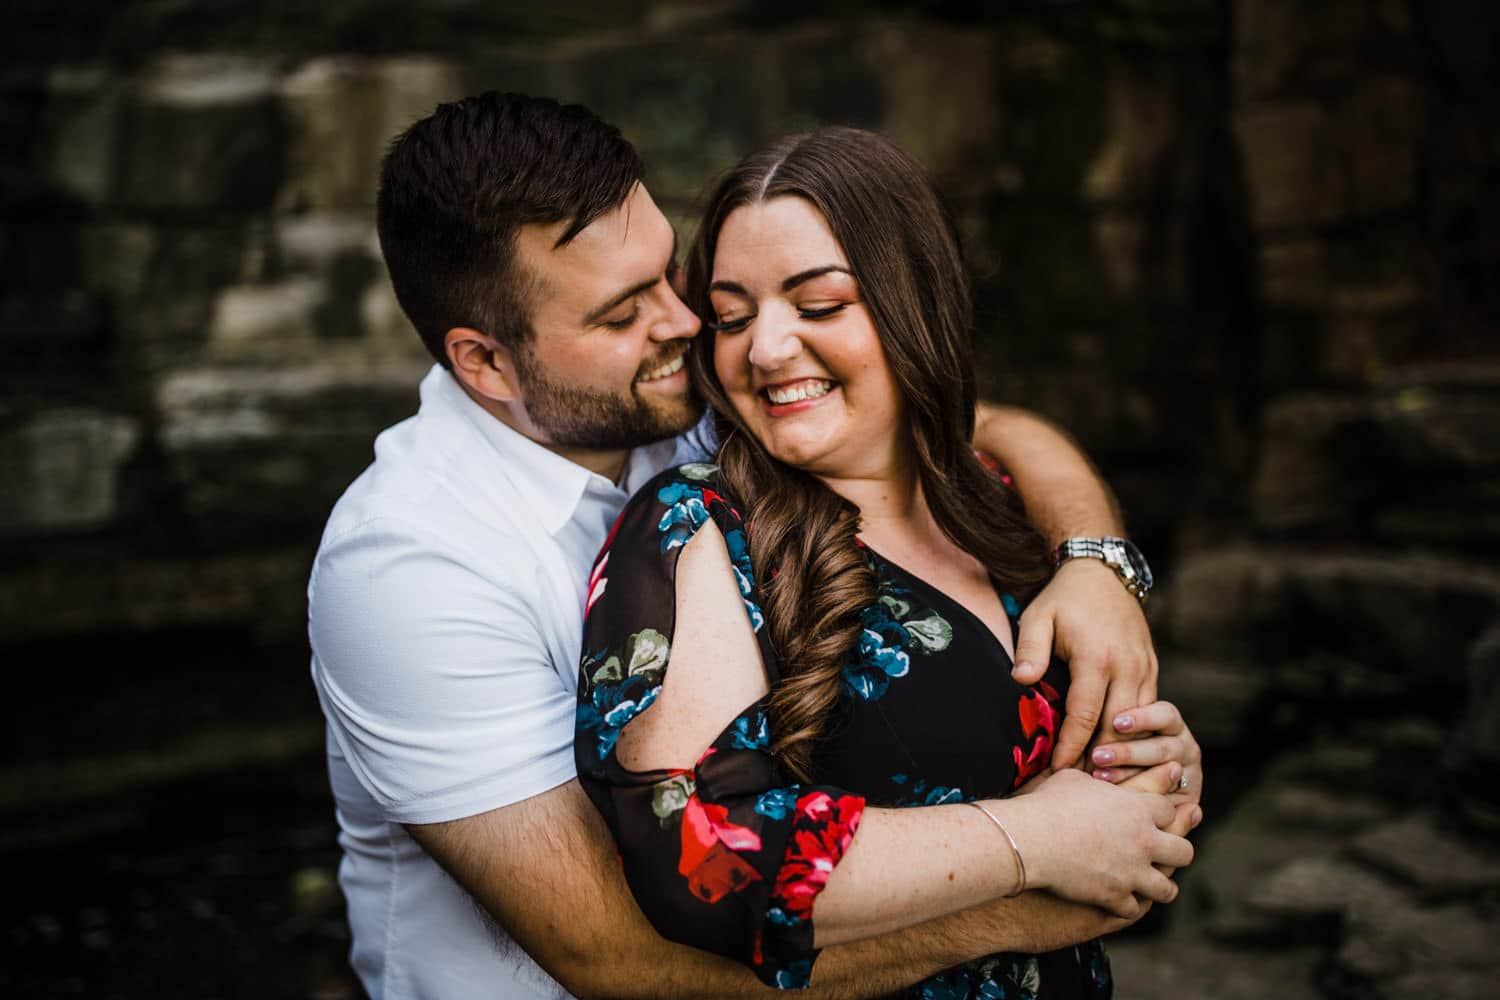 man wraps his arms around woman during engagement session - princess louise falls engagement